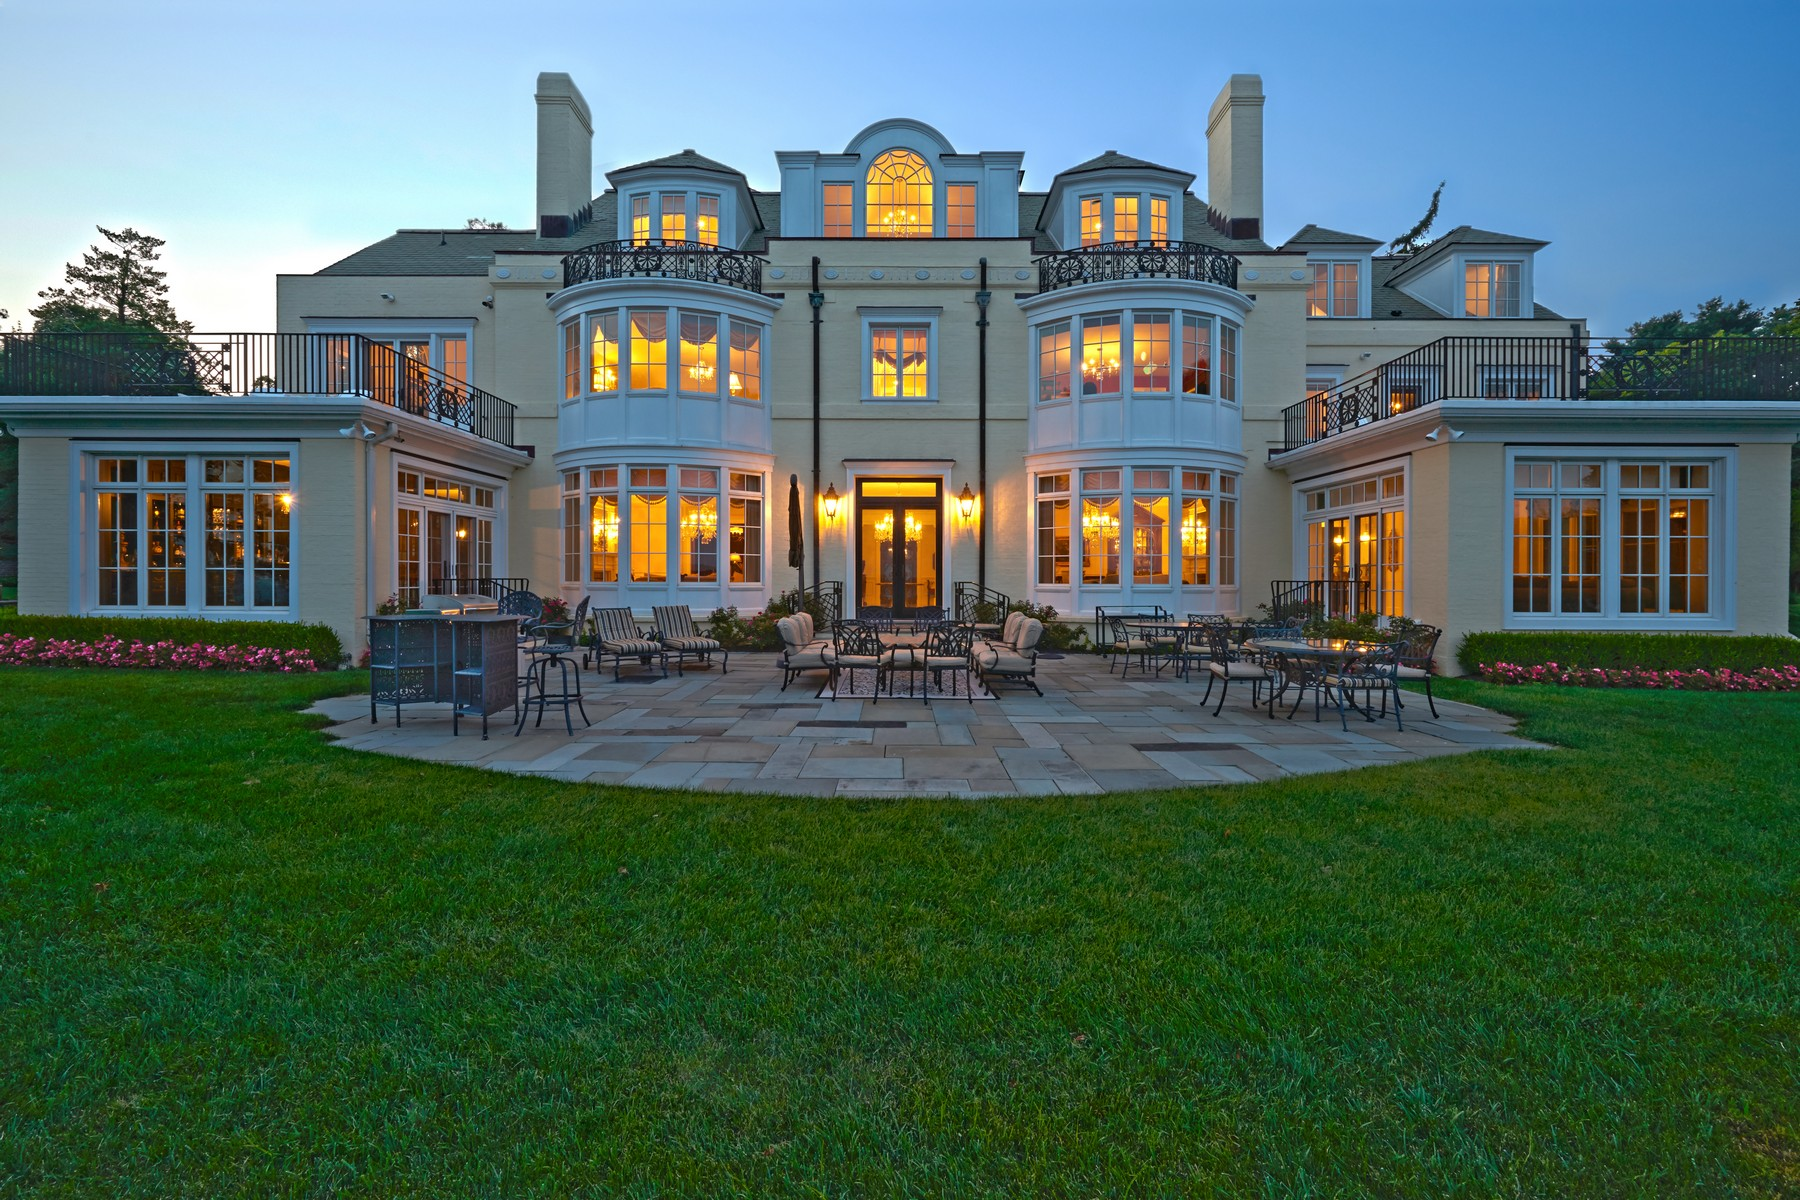 Single Family Home for Sale at Holly House Estate 536 Navesink River Rd Middletown, New Jersey 07748 United States